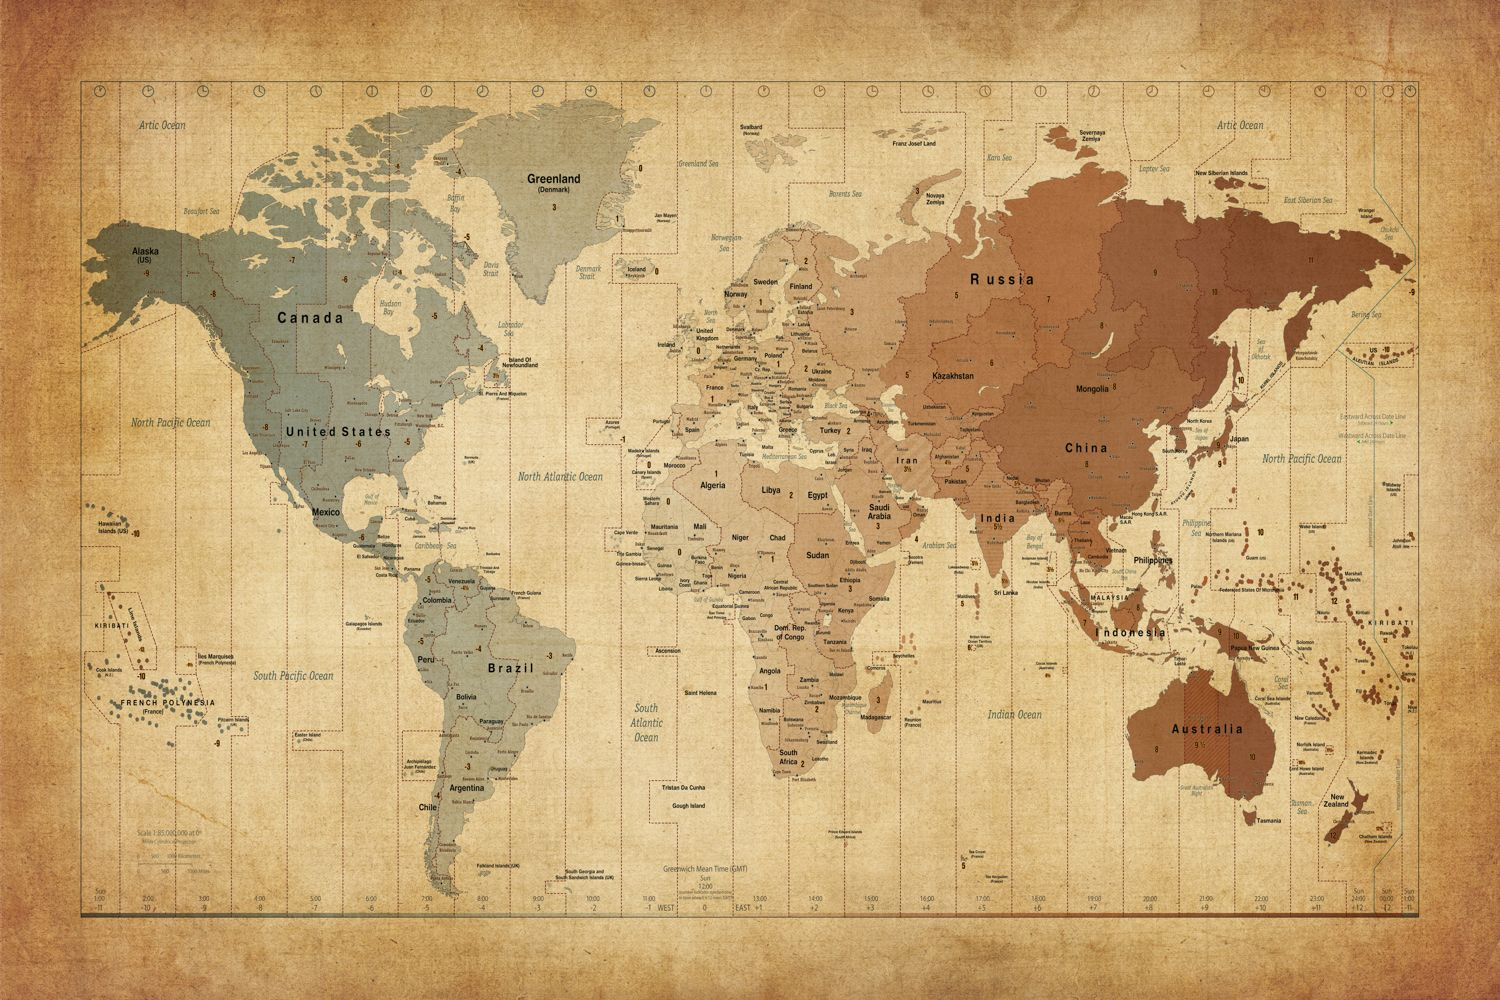 Map of the world iii canvas art print by michael tompsett canvases map of the world iii canvas print by michael tompsett gumiabroncs Image collections